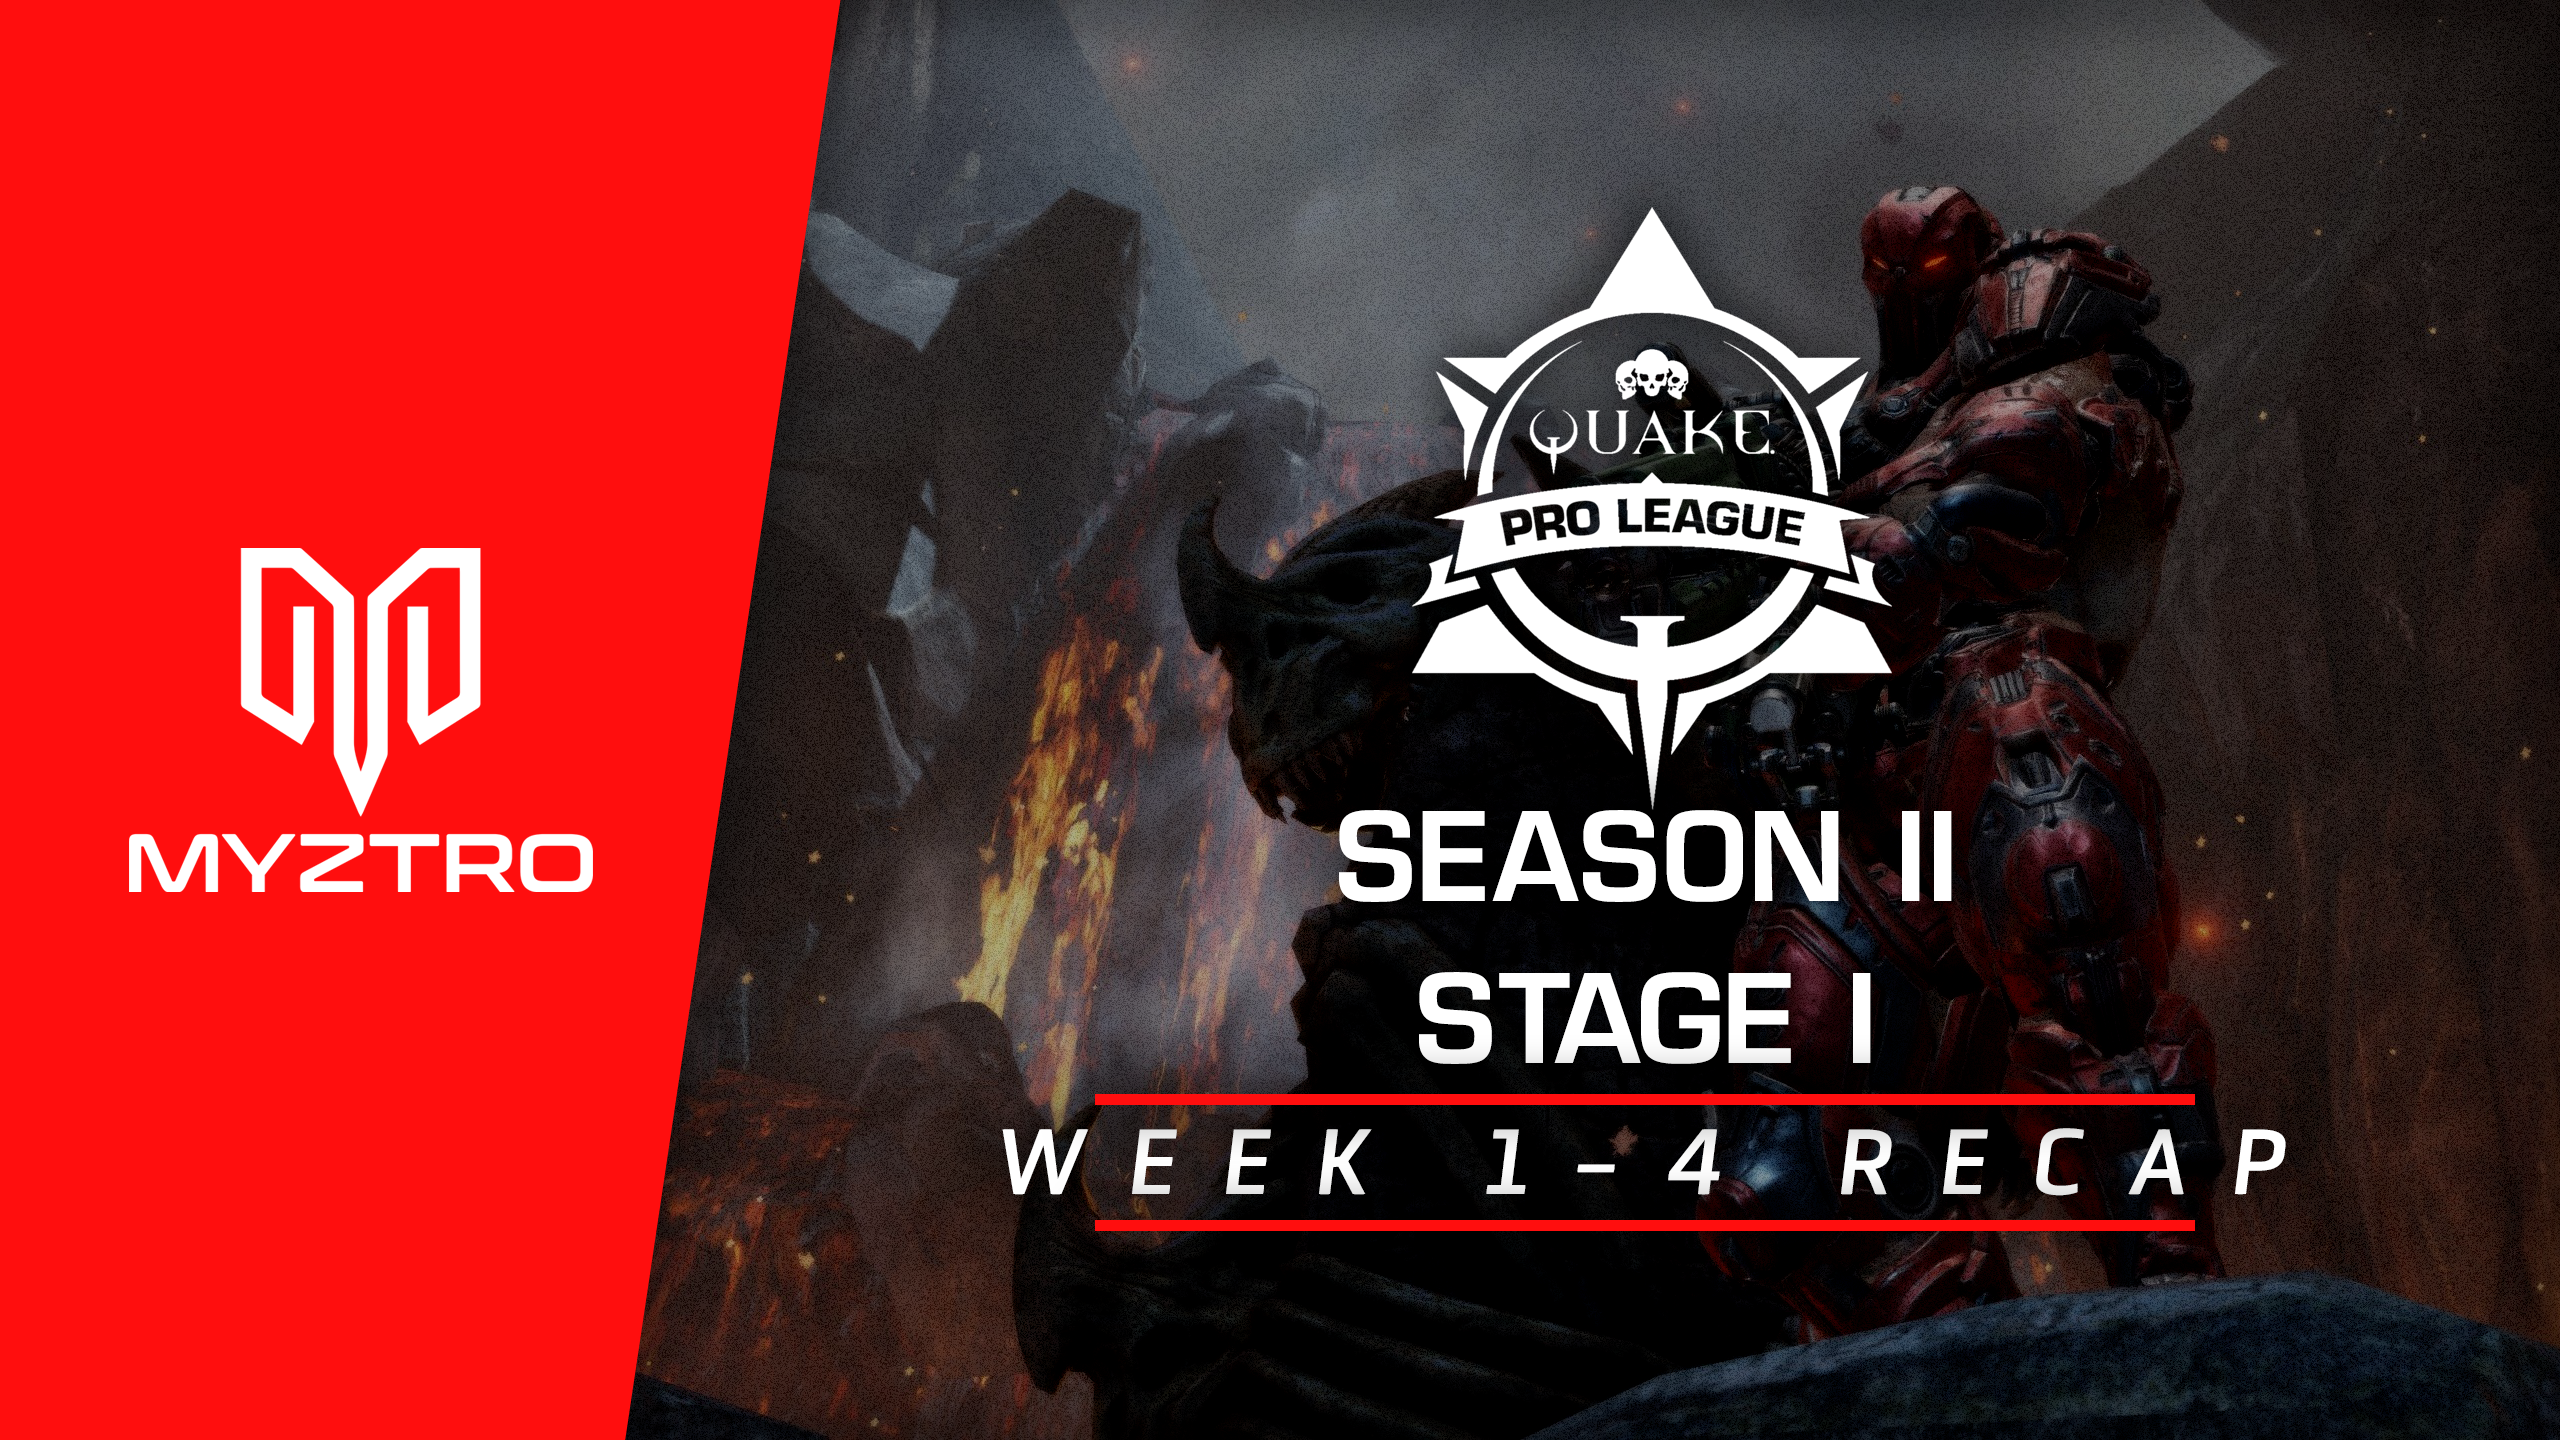 Myztro QPL Recap: Season 2, Stage 1, Weeks 1-4